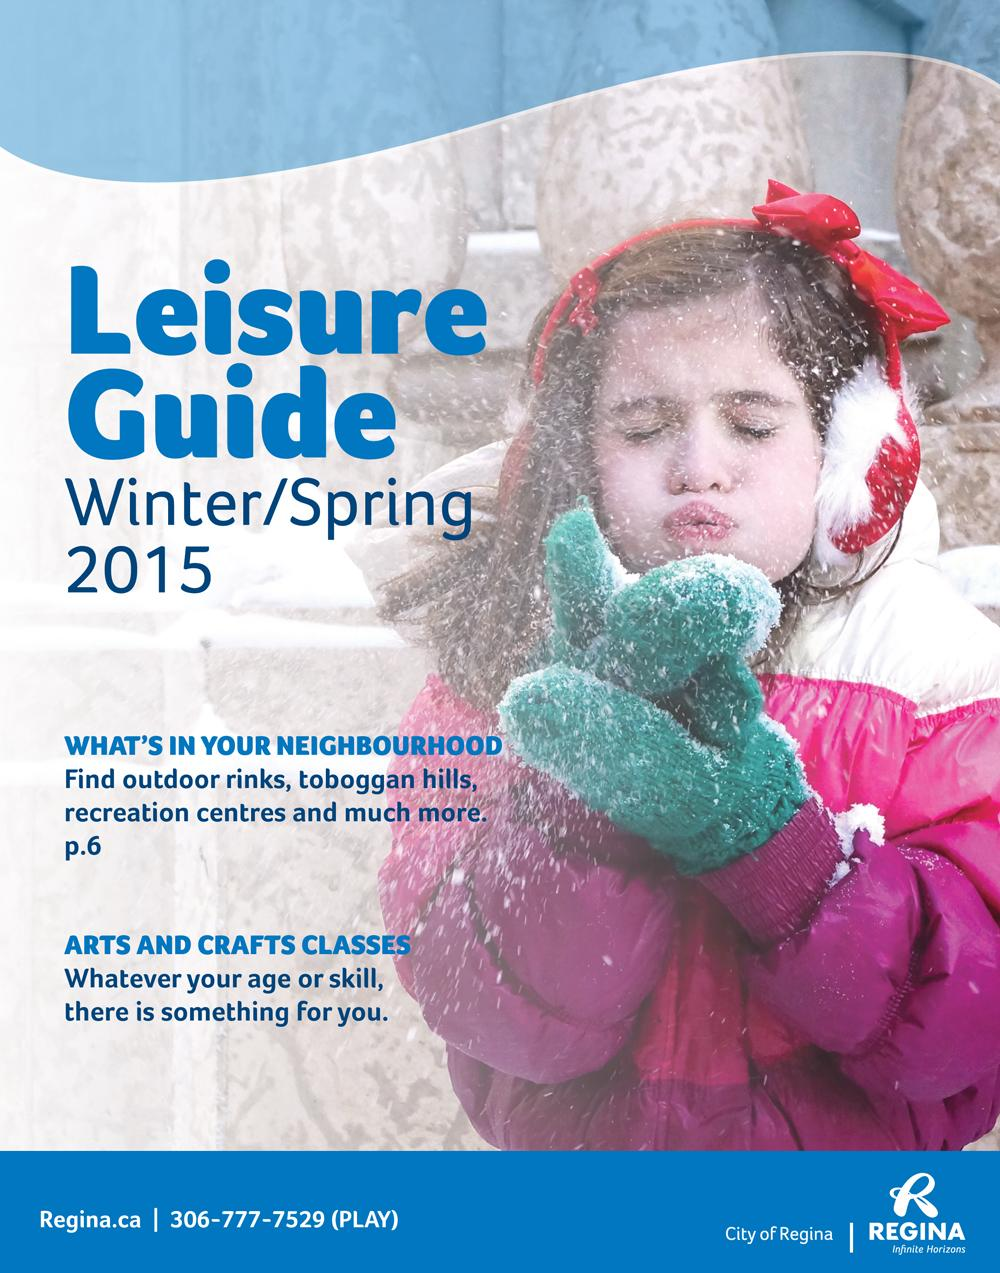 City of regina sees increase in leisure guide registration.